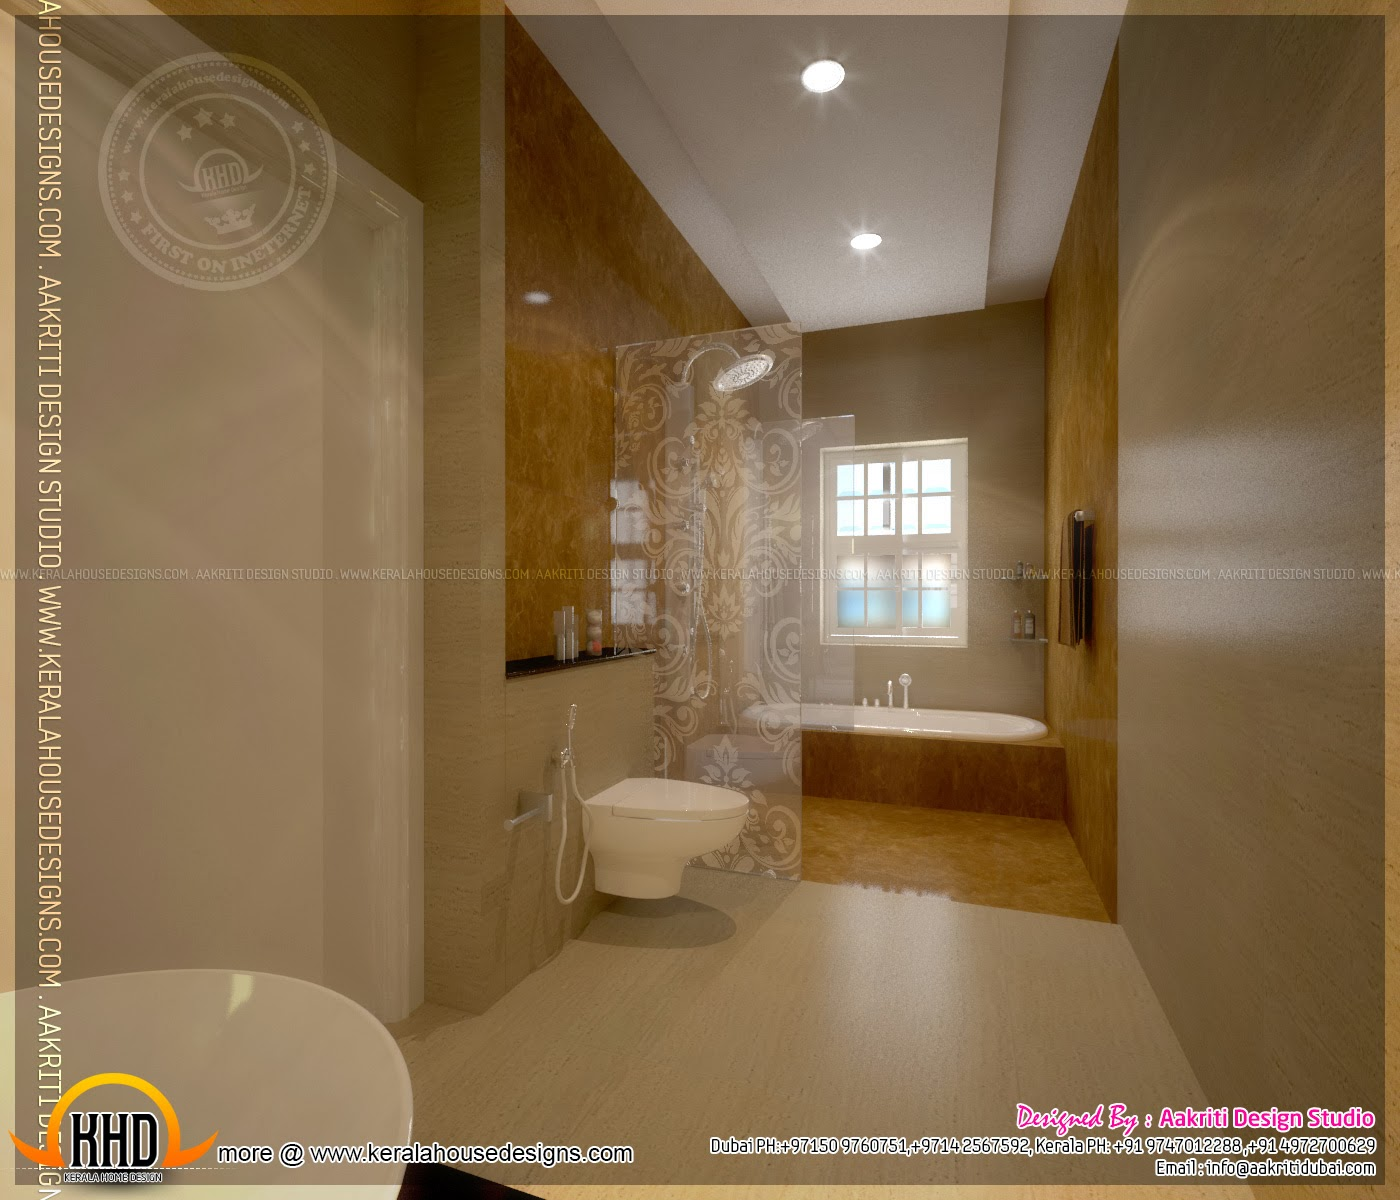 Master bedroom and bathroom interior design kerala home design and floor plans Master bedroom with toilet design